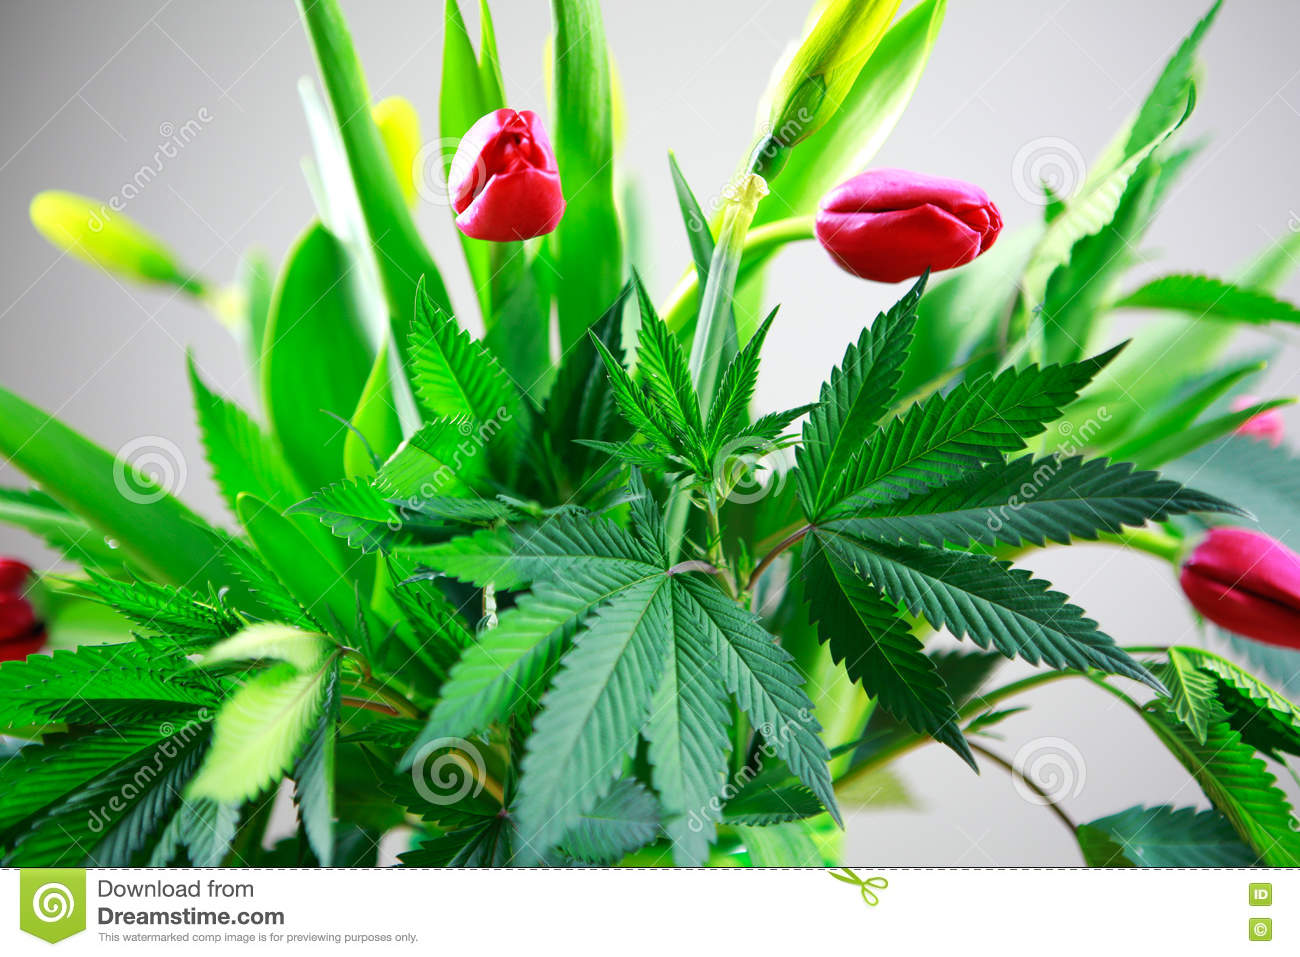 Marijuana green fresh large leafs ( cannabis), hemp plant in a nice spring flower bouquet with pink tulips.